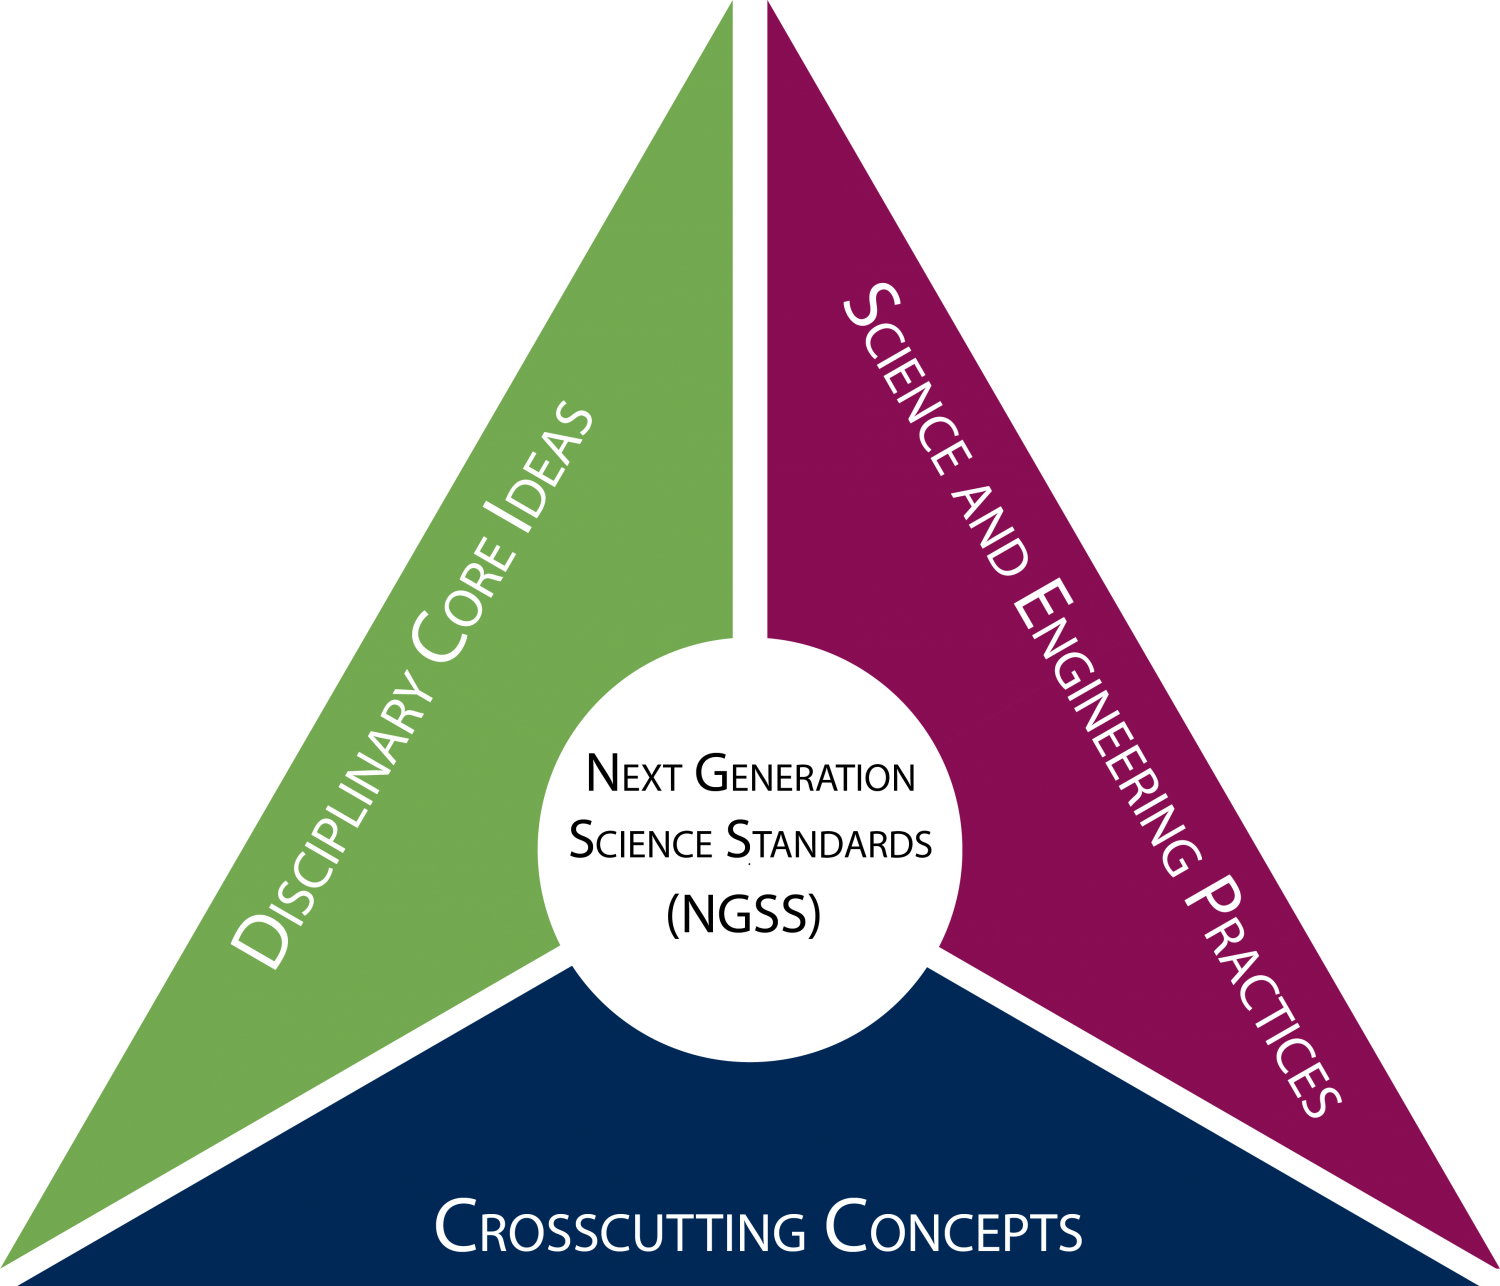 Next Generation Science Standards: Disciplinary Core Ideas | Science and Engineering Practices | Crosscutting Concepts